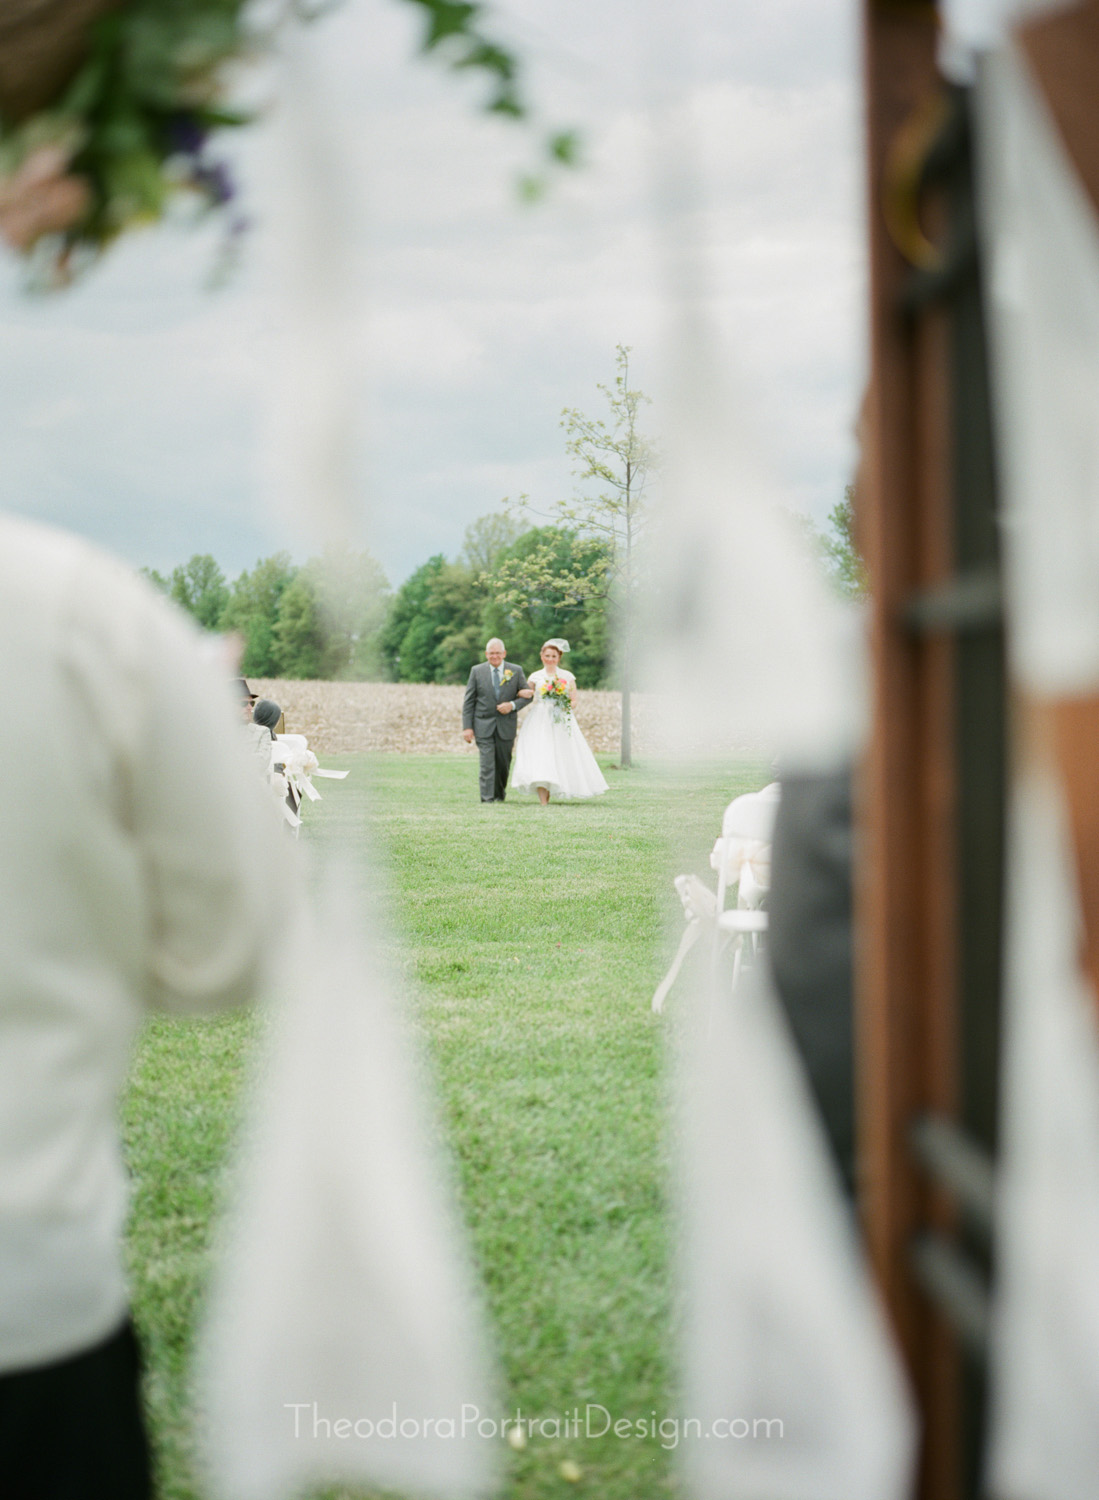 father and daughter walking down the aisle     www.TheodoraPortraitDesign.com   film wedding photography